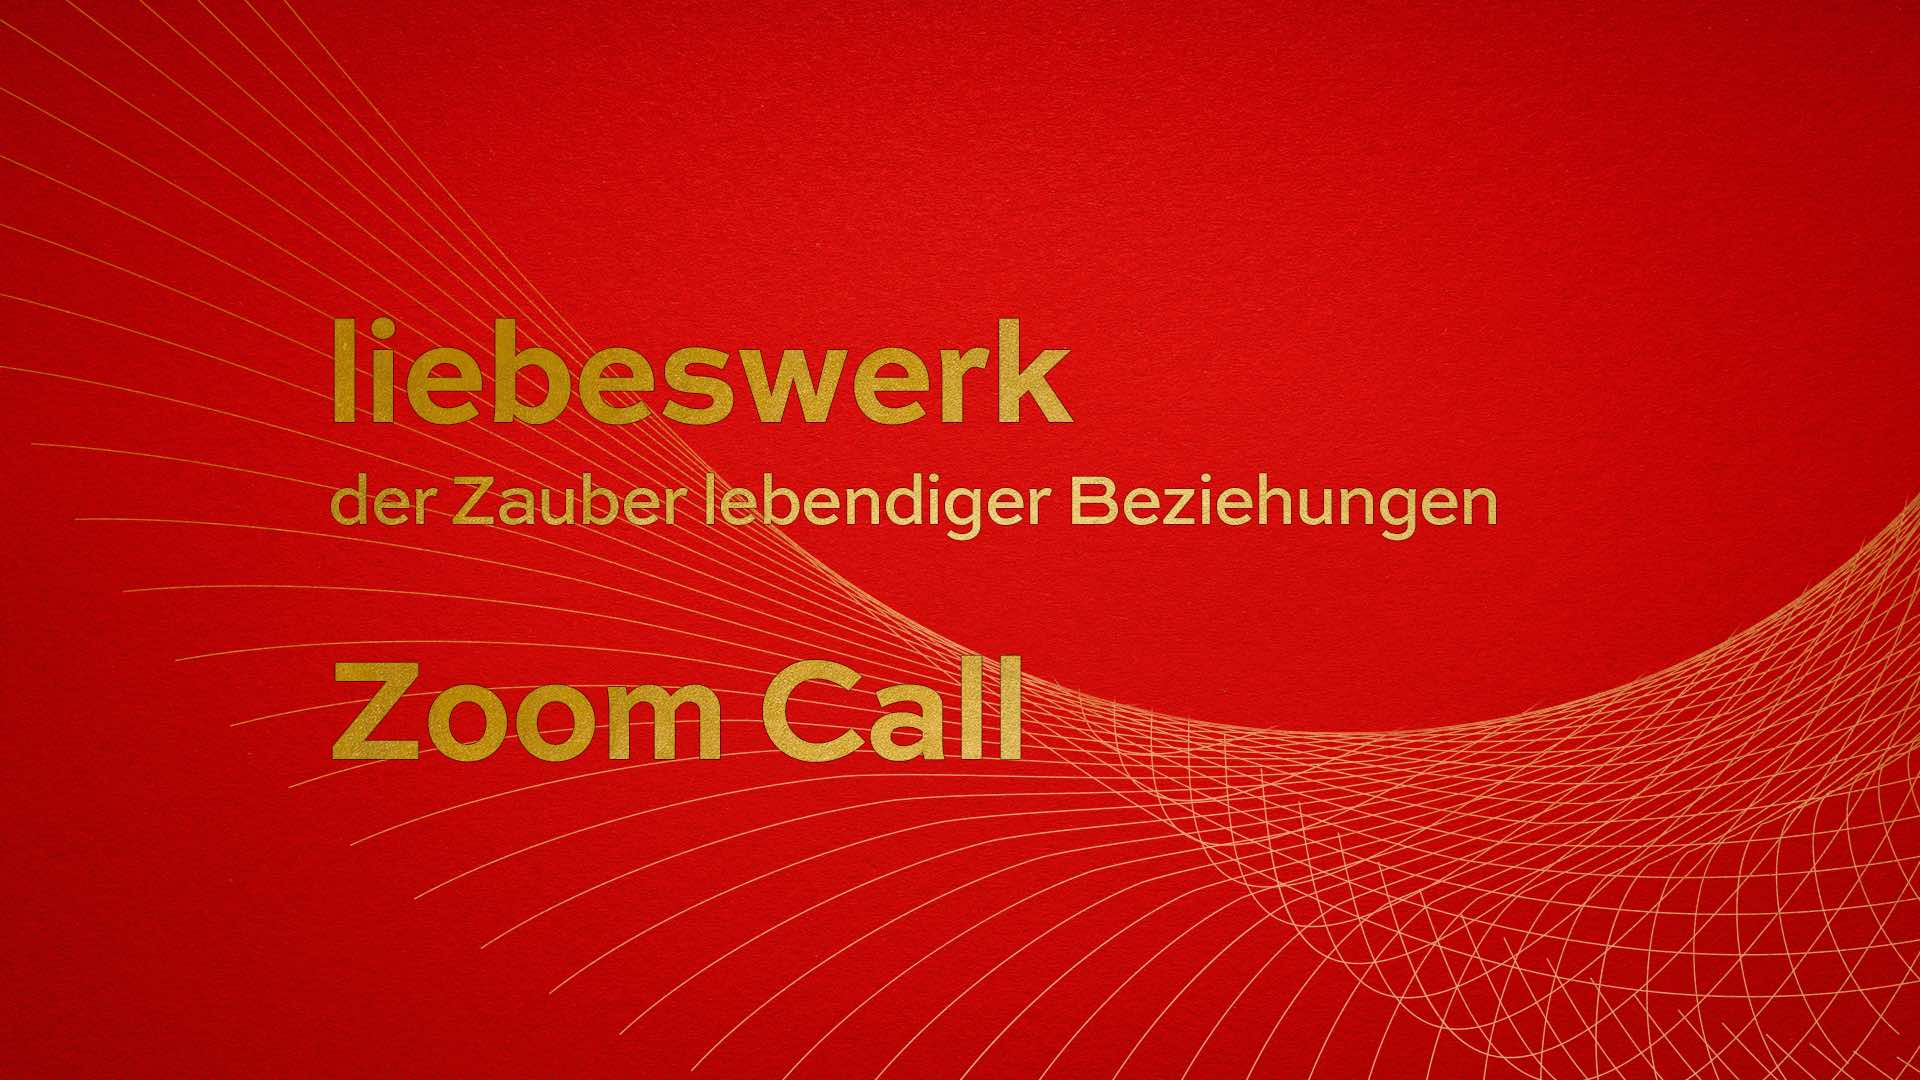 liebeswerk Zoom Call